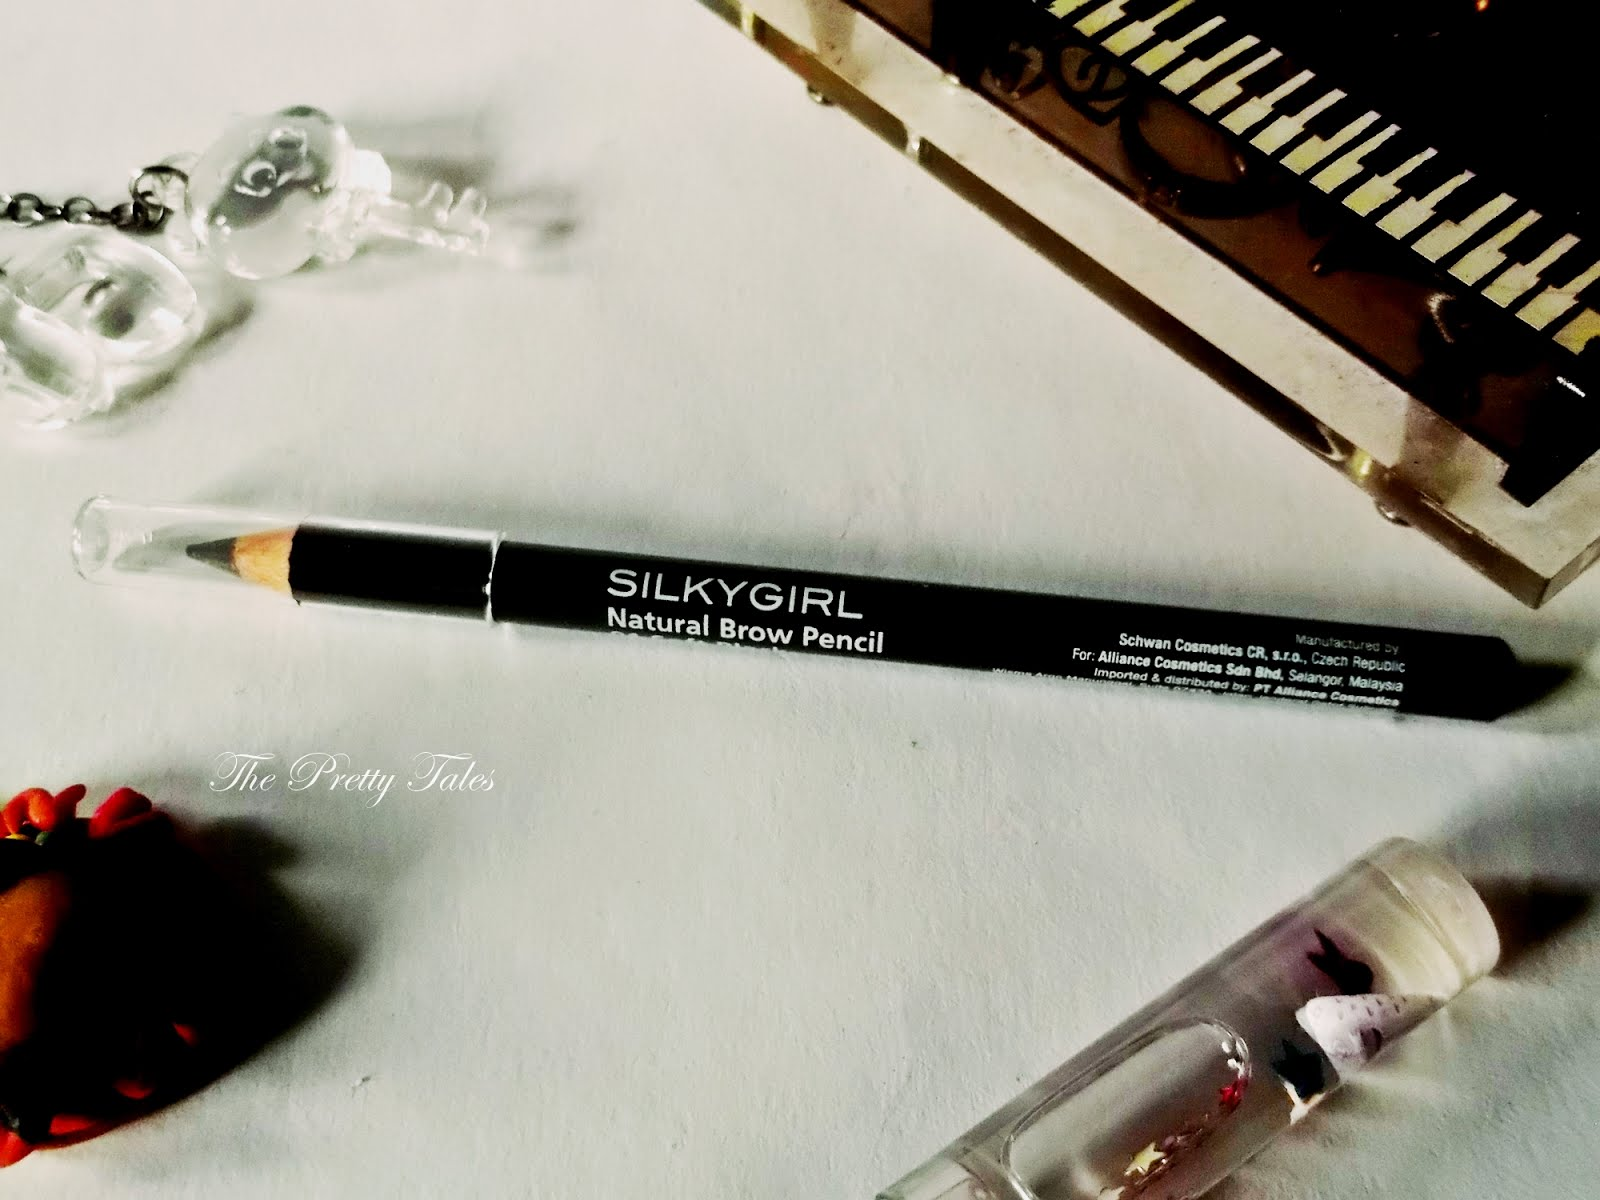 SILKYGIRL Natural Brow Pencil Review Soft Black